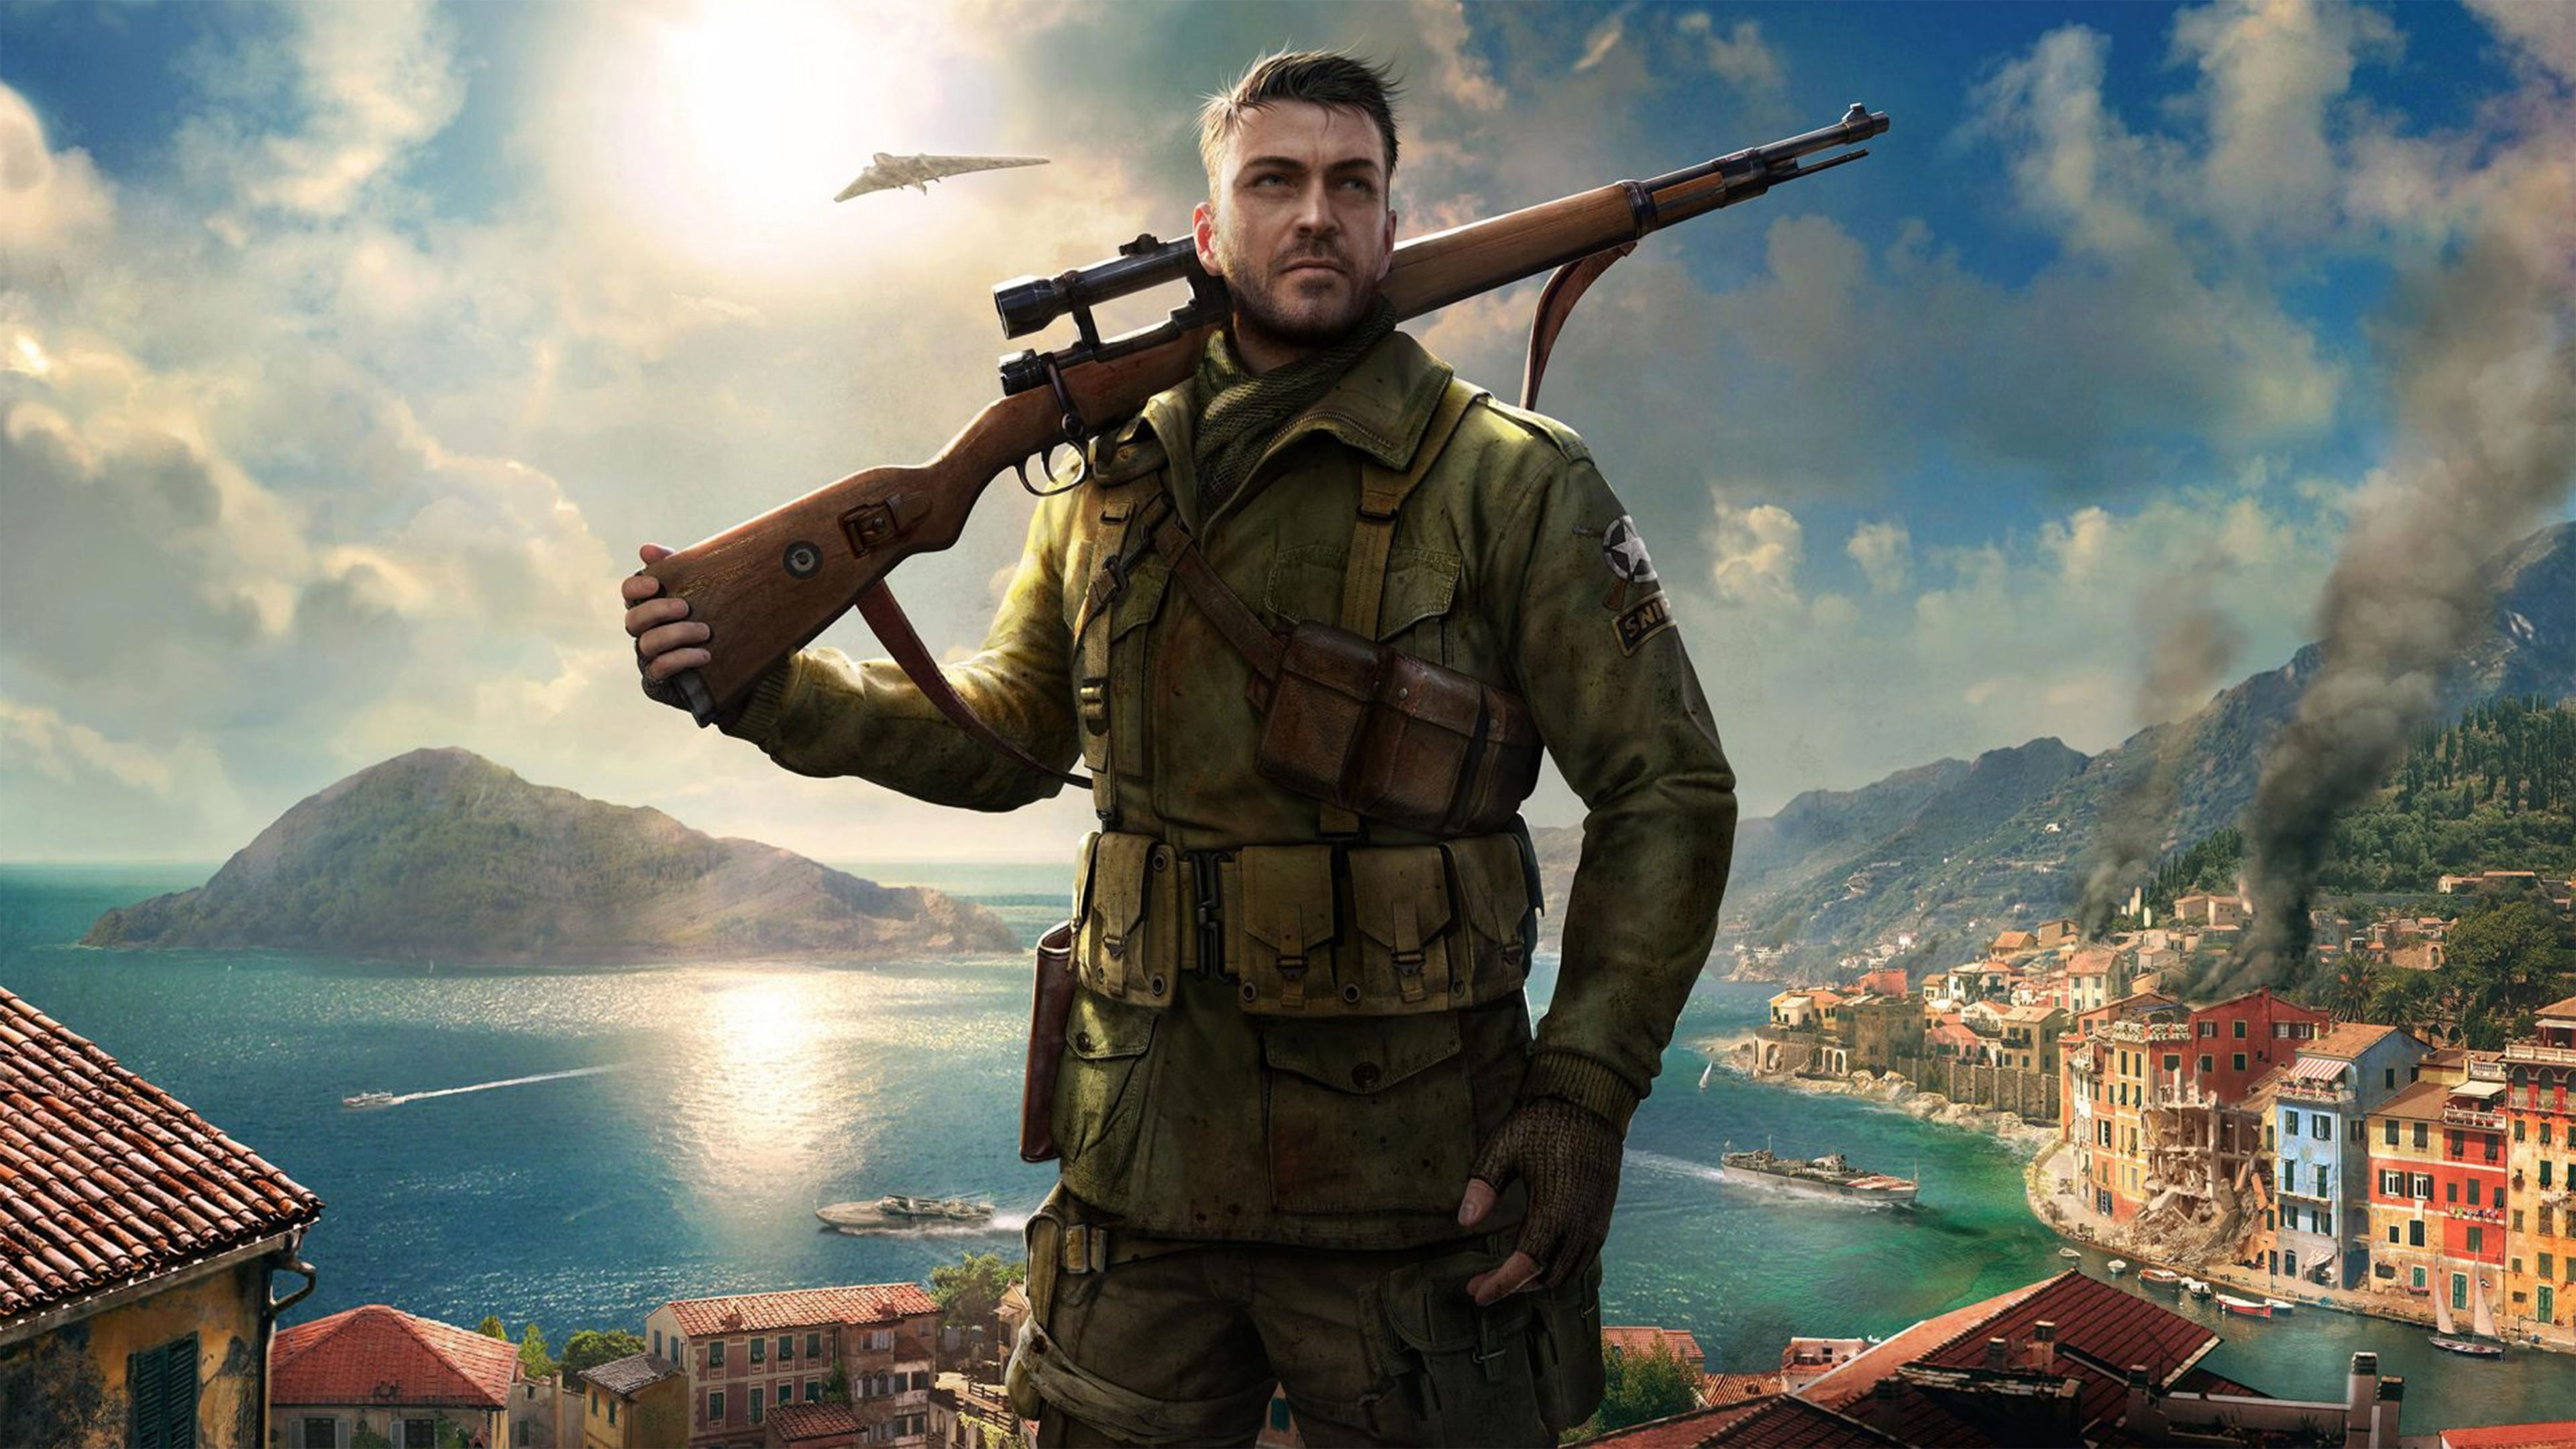 Sniper Elite 4 Wallpapers in Ultra HD 4K   Gameranx 3840x2160